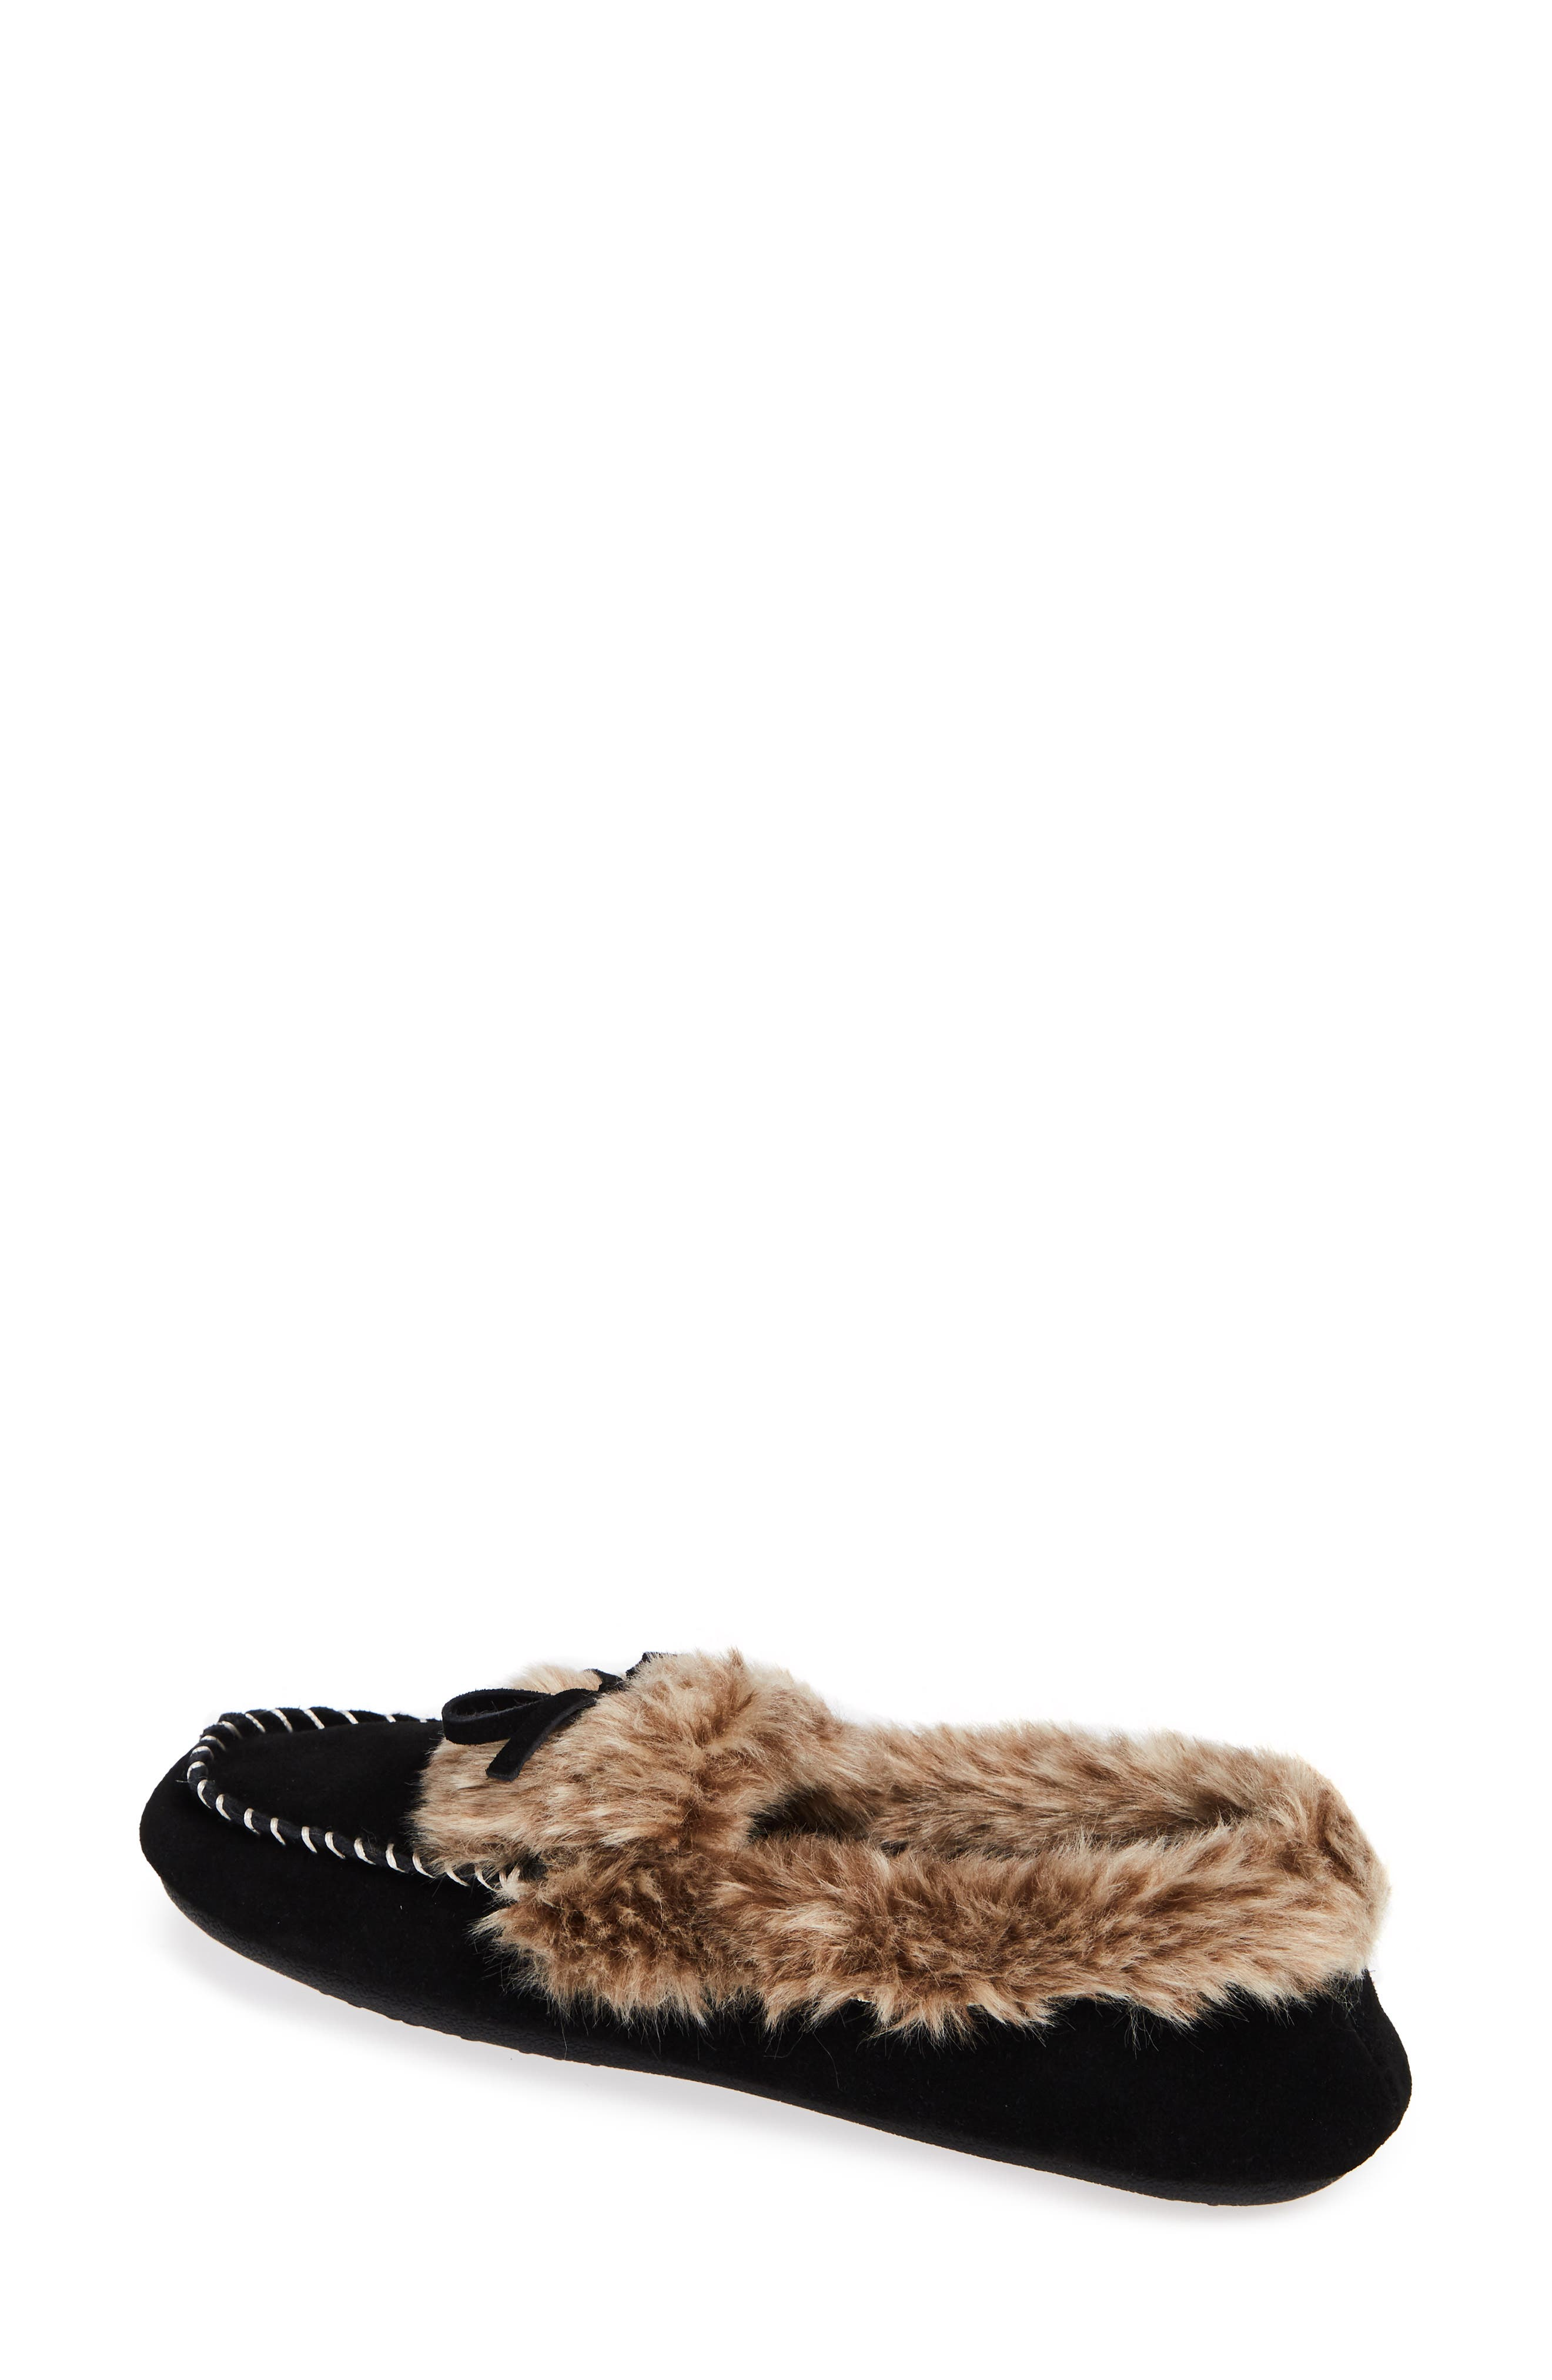 ACORN, Faux Fur Trim Moccasin Indoor/Outdoor Slipper, Alternate thumbnail 2, color, BLACK SUEDE